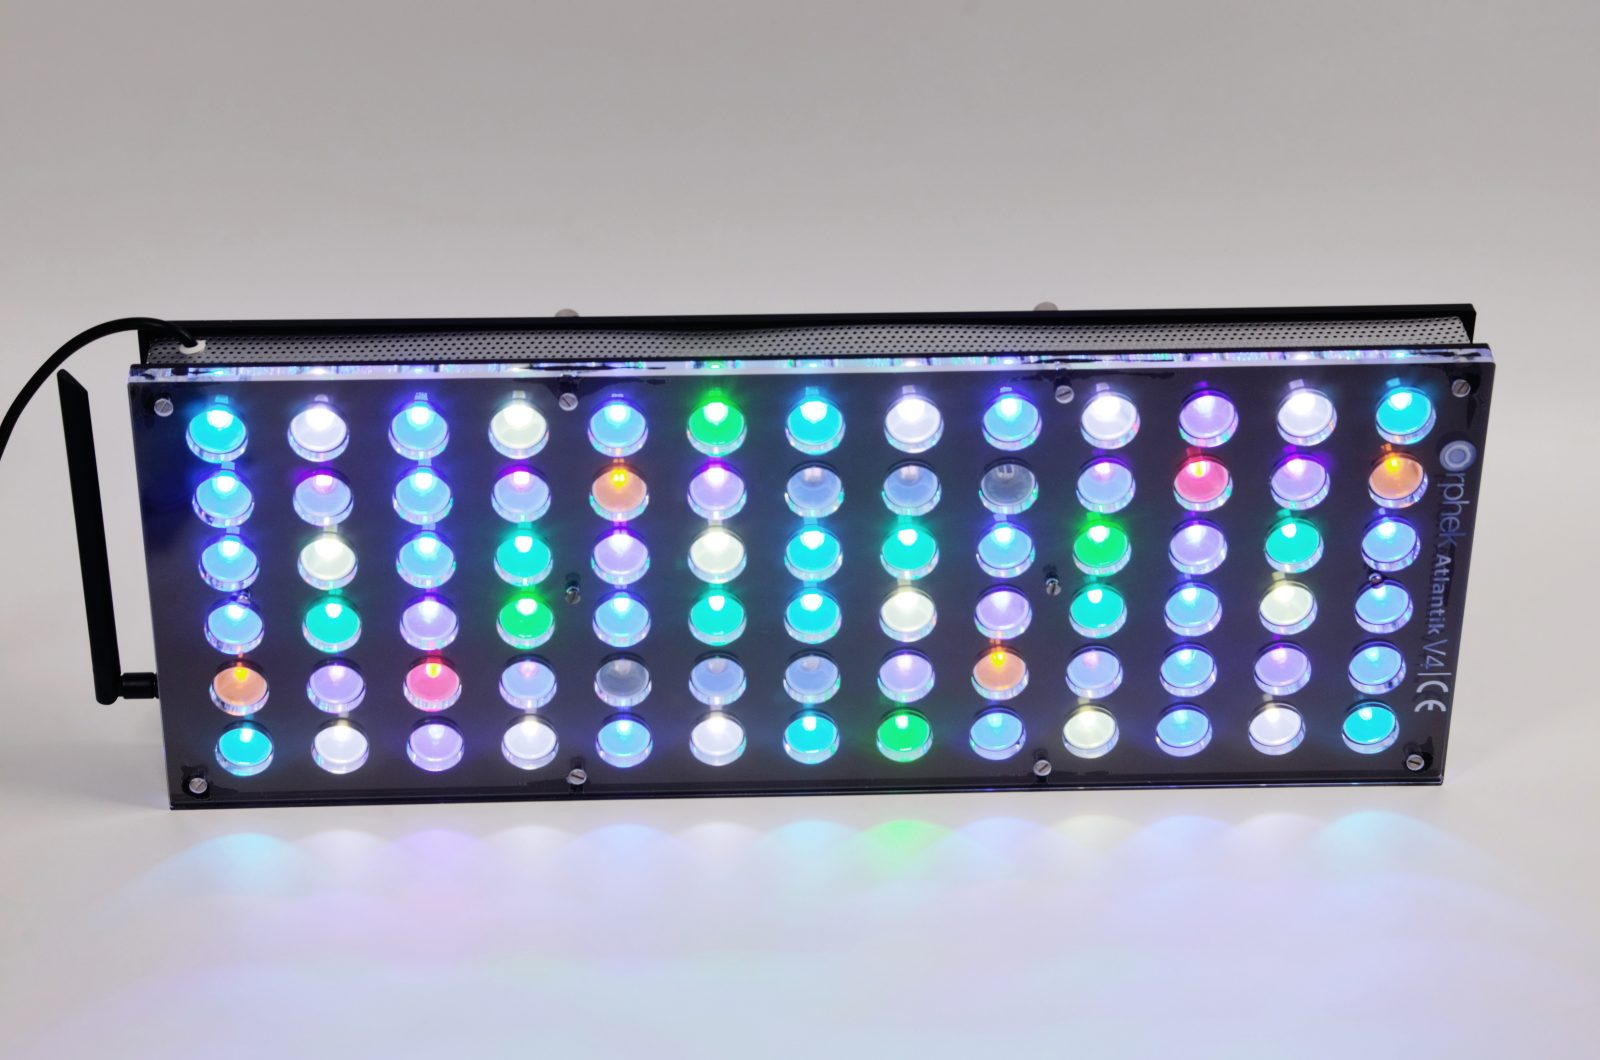 Orphek-Aquarium-LED-освітлення-Риф-Atlantik-V4